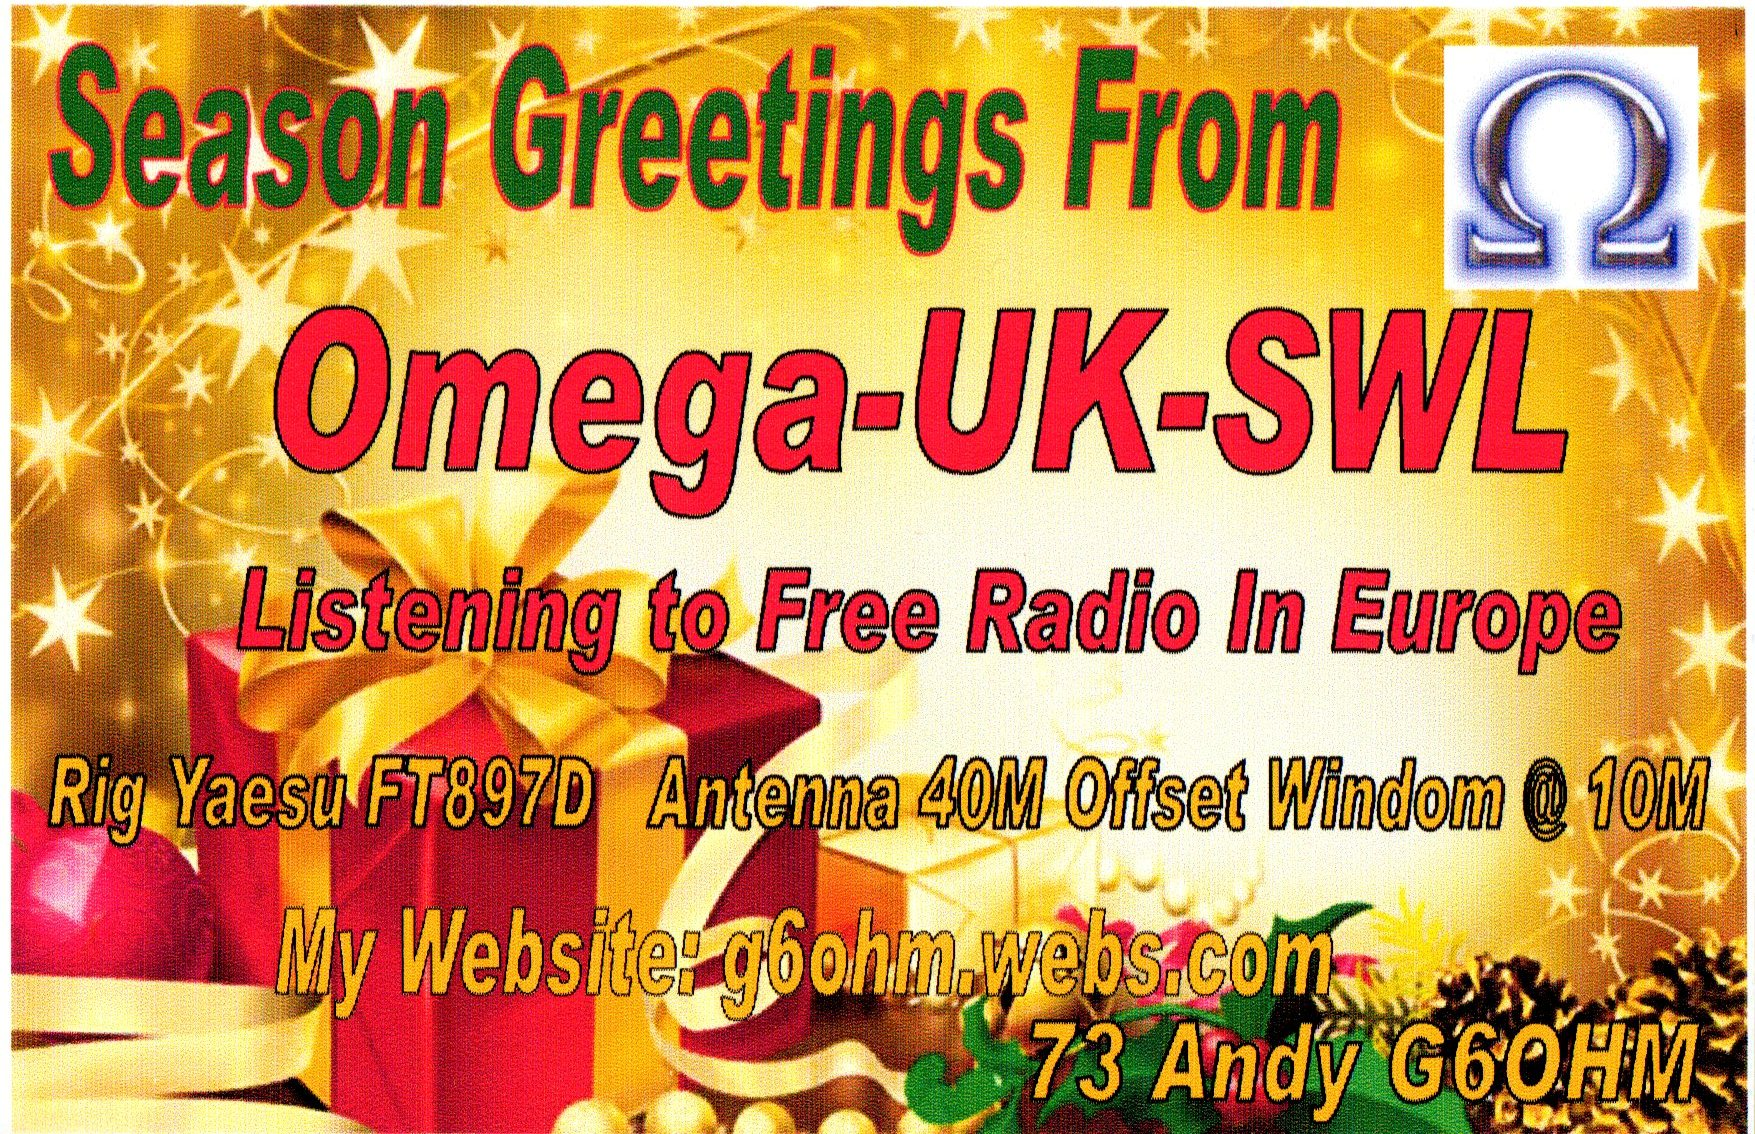 Pirate Radio QSL card - Omega